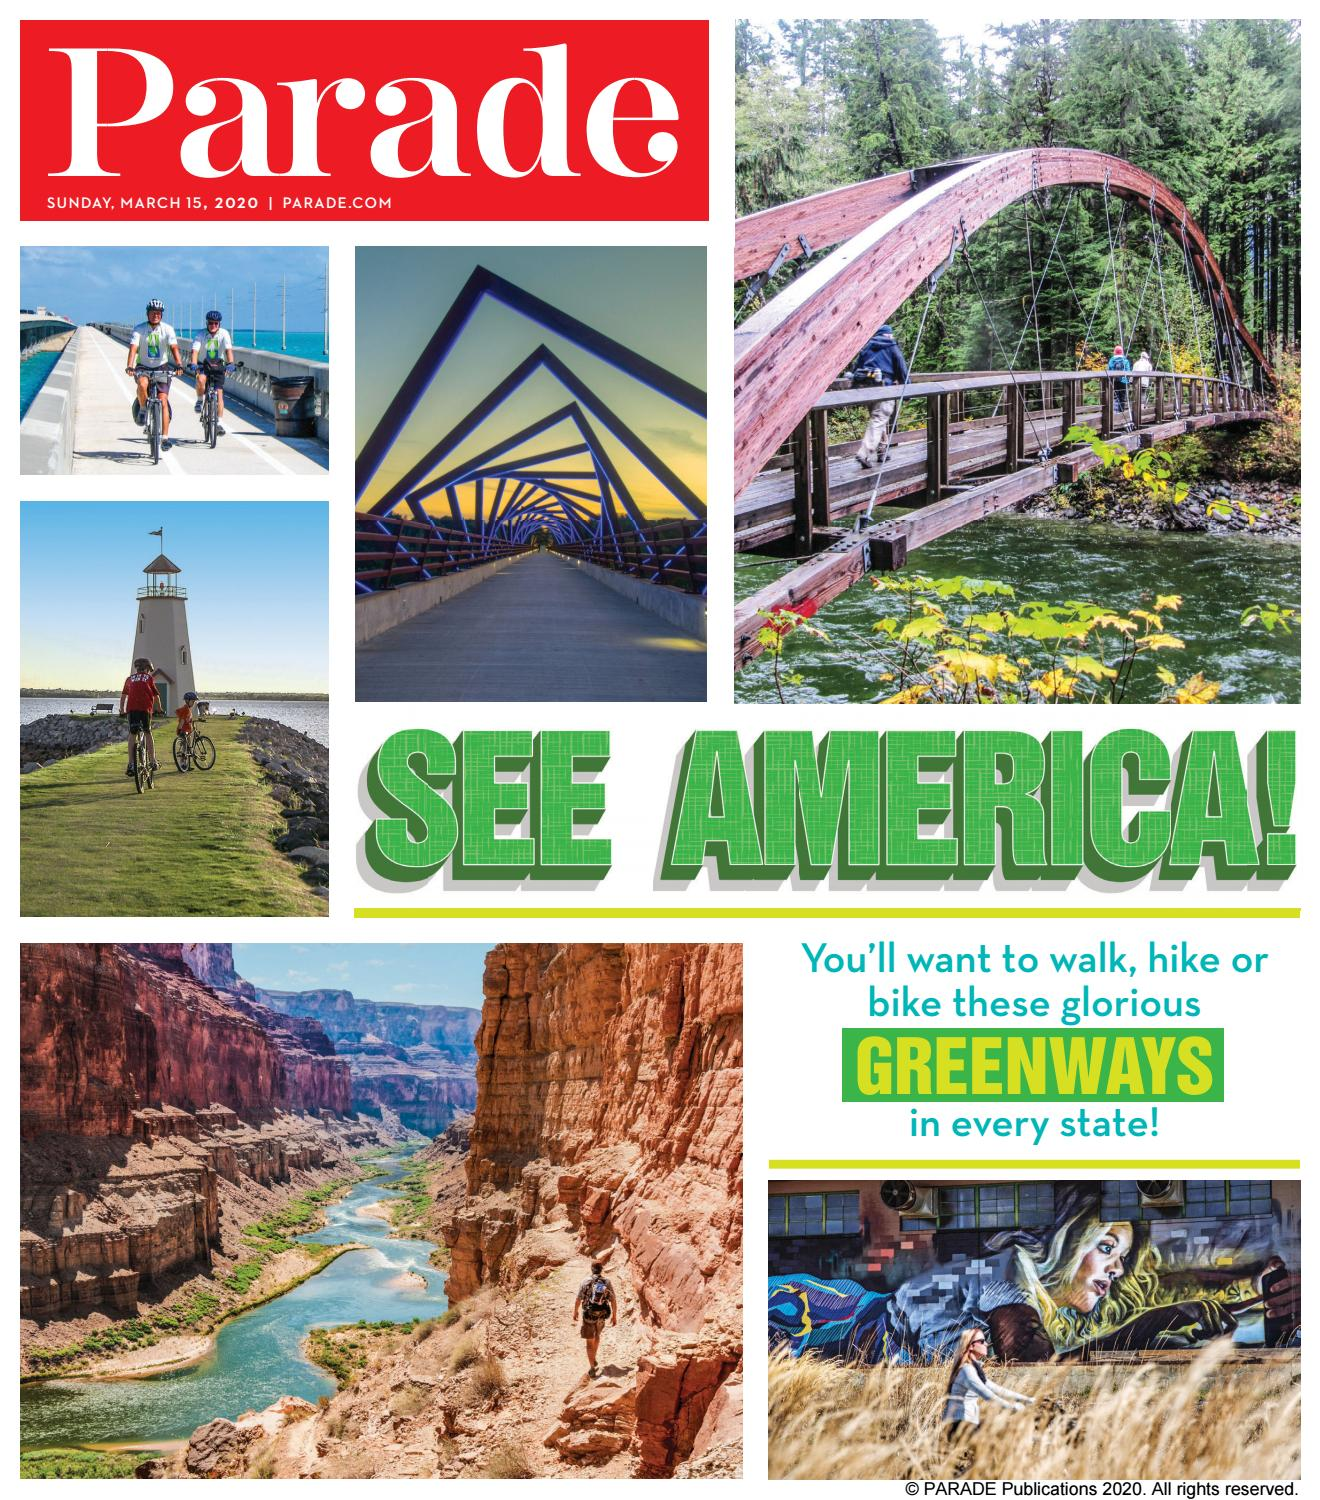 Parade Magazine In The Greeneville Sun March 14 By The Greeneville Sun Issuu